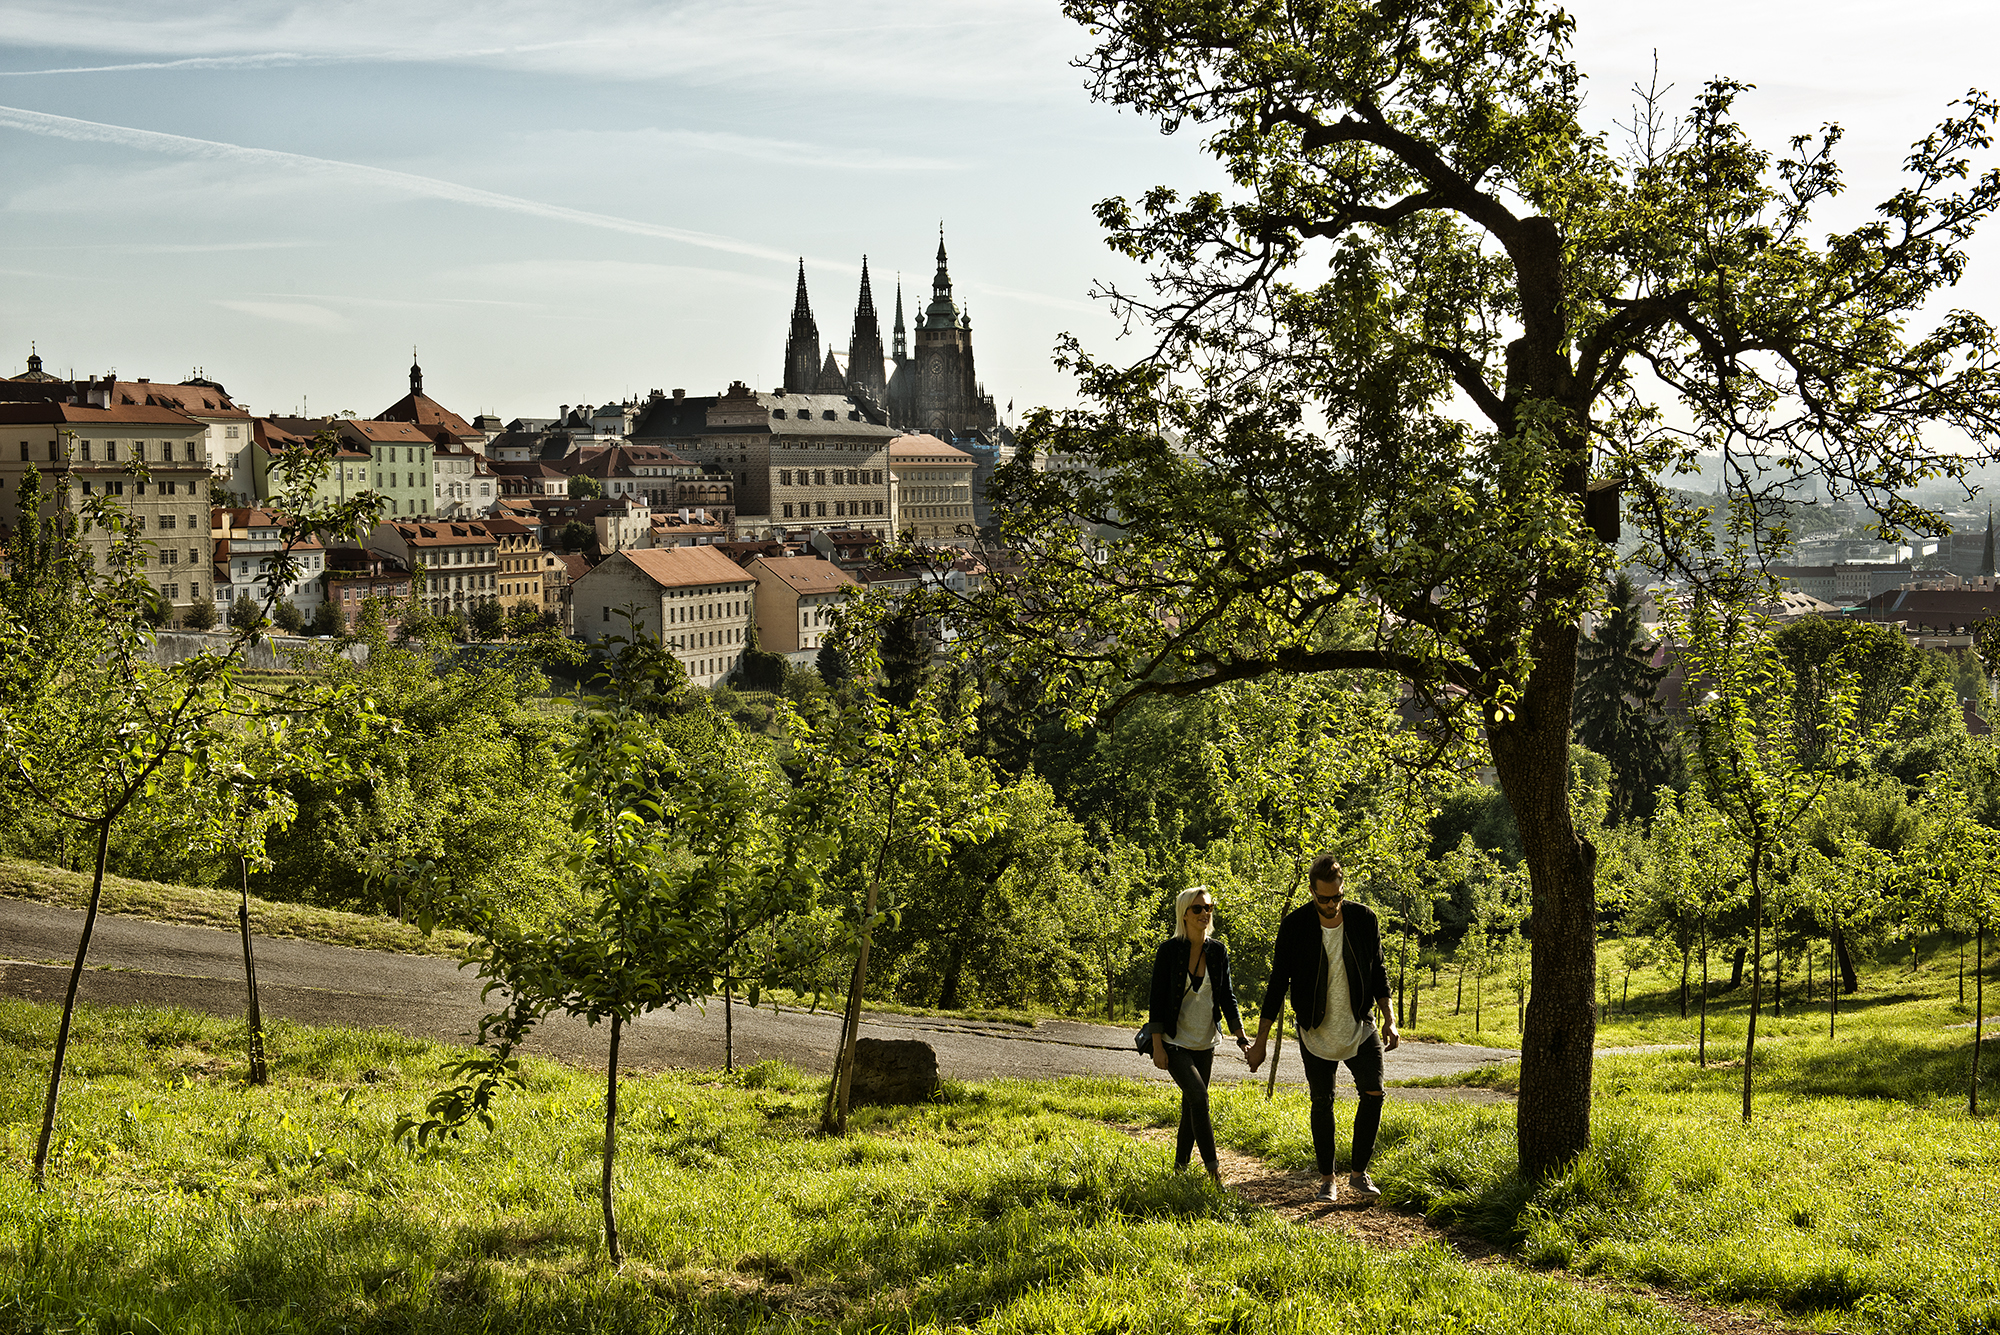 A spring view of the Prague Castle panorama in the background, with a young couple walking up the Petrín Hill path in the foreground